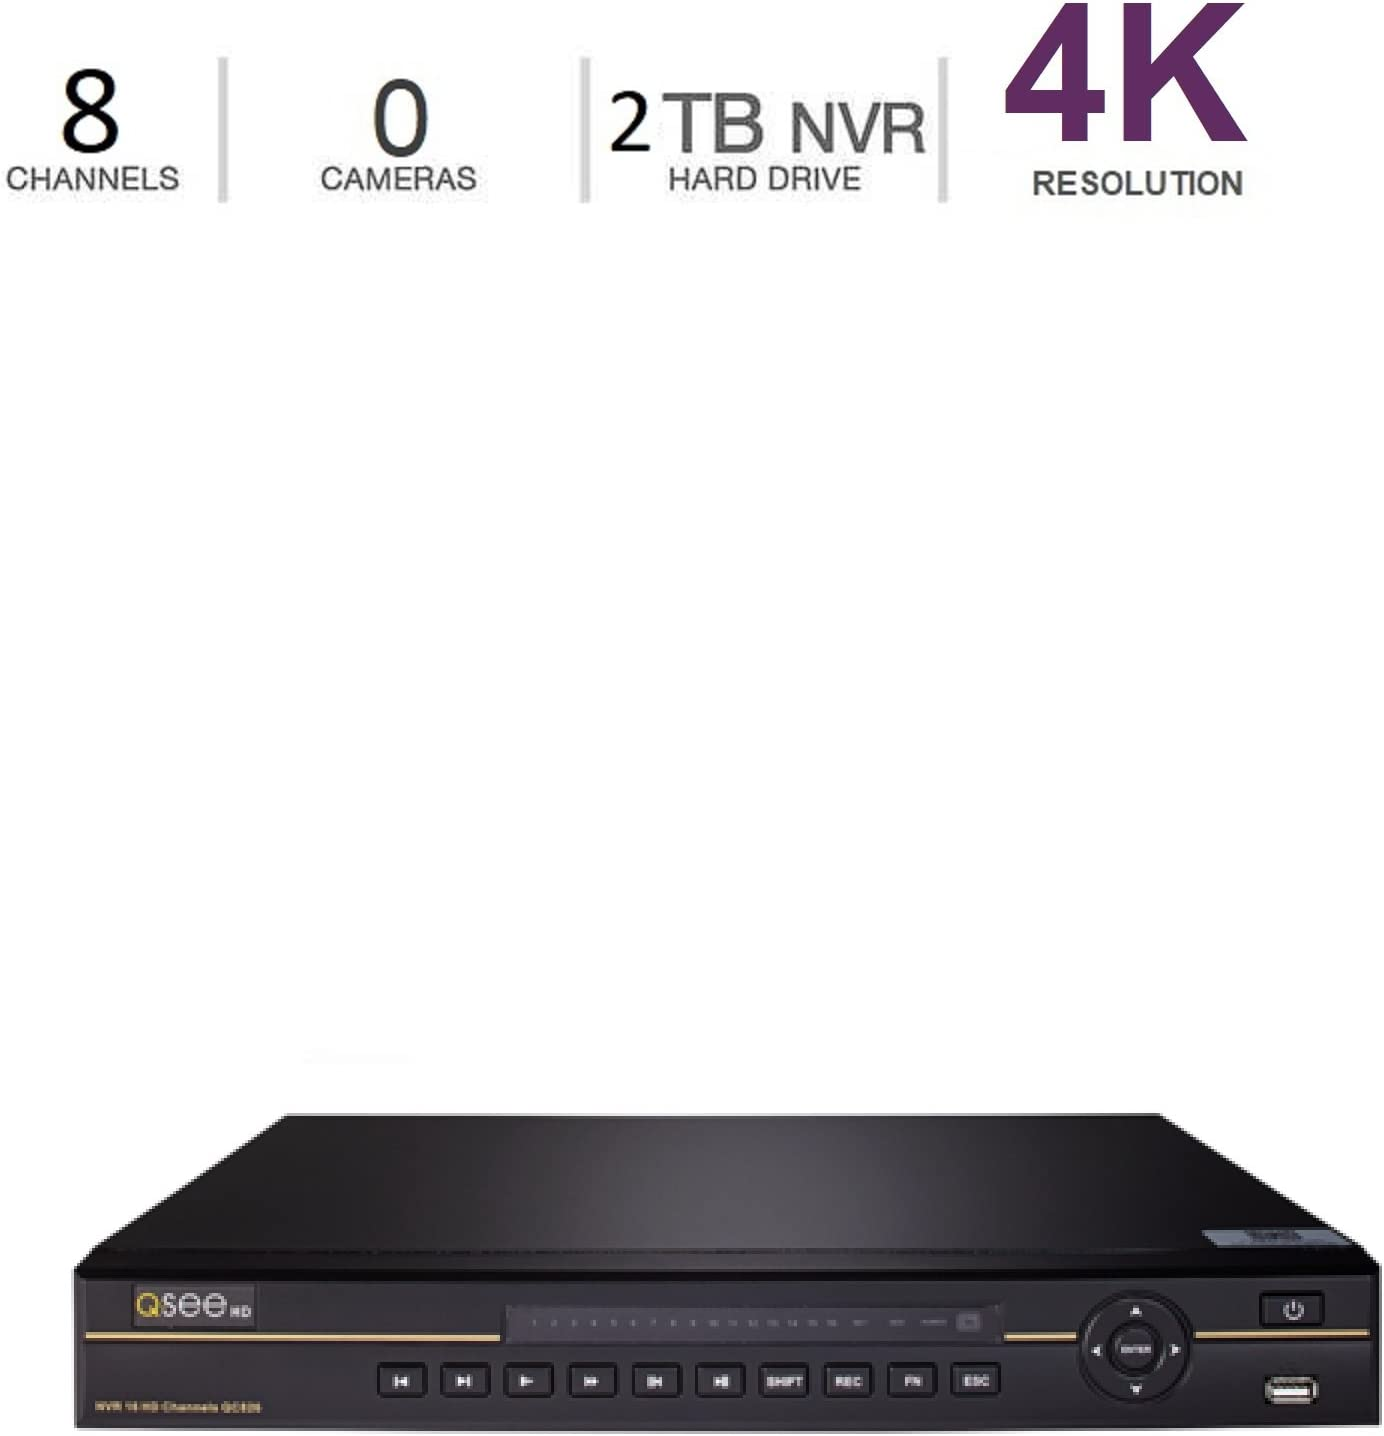 Q-See 4K 8MP 8-Channel NVR Ultra HD QC IP Series Surveillance with H.265 and Expandable 2TB HDD (QCK81-2)